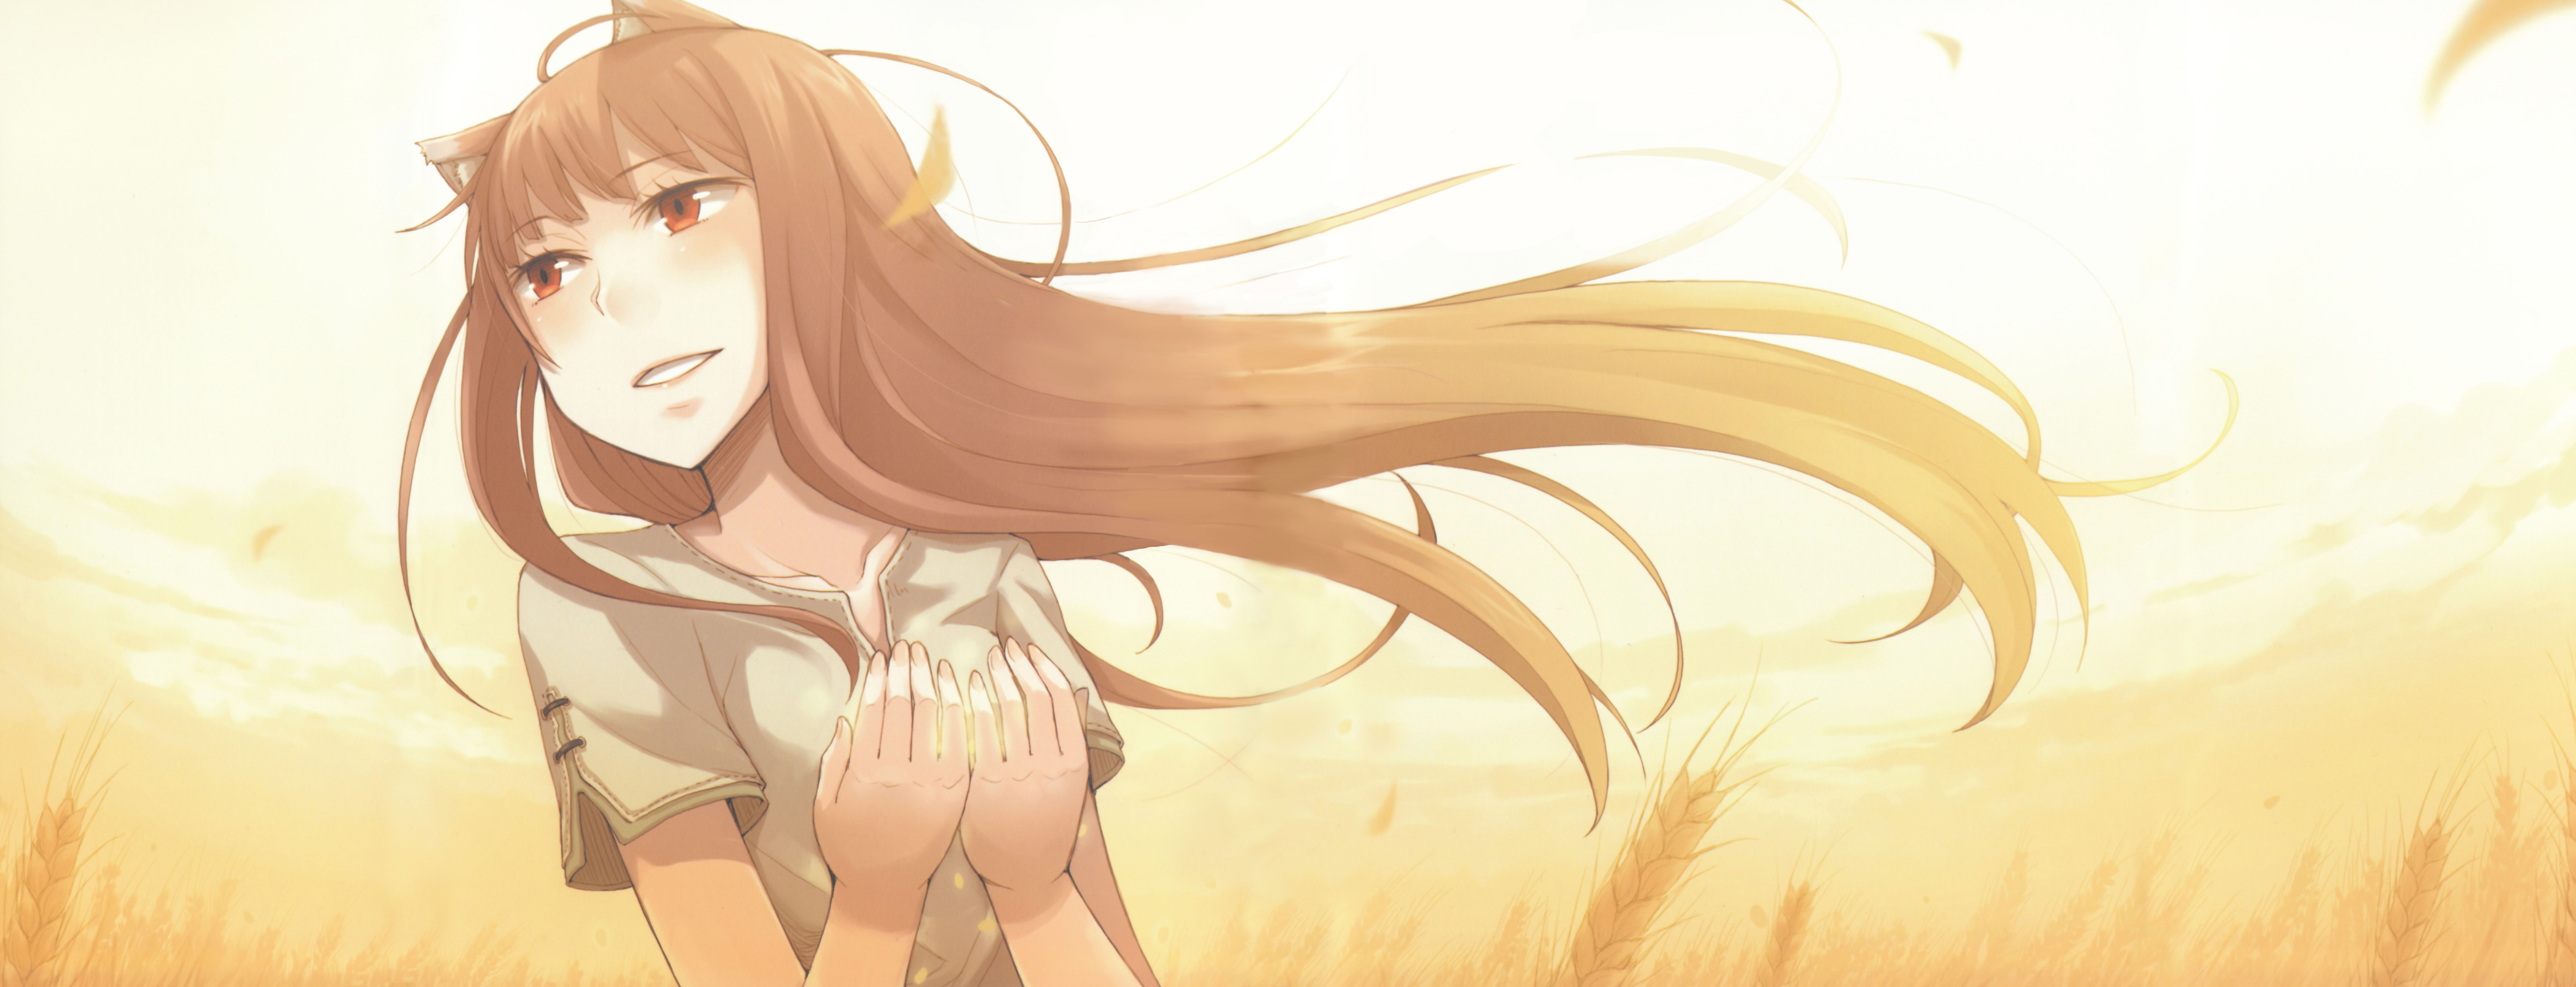 Pin By Jerry Wang On Light Novel Spice And Wolf Holo Spice And